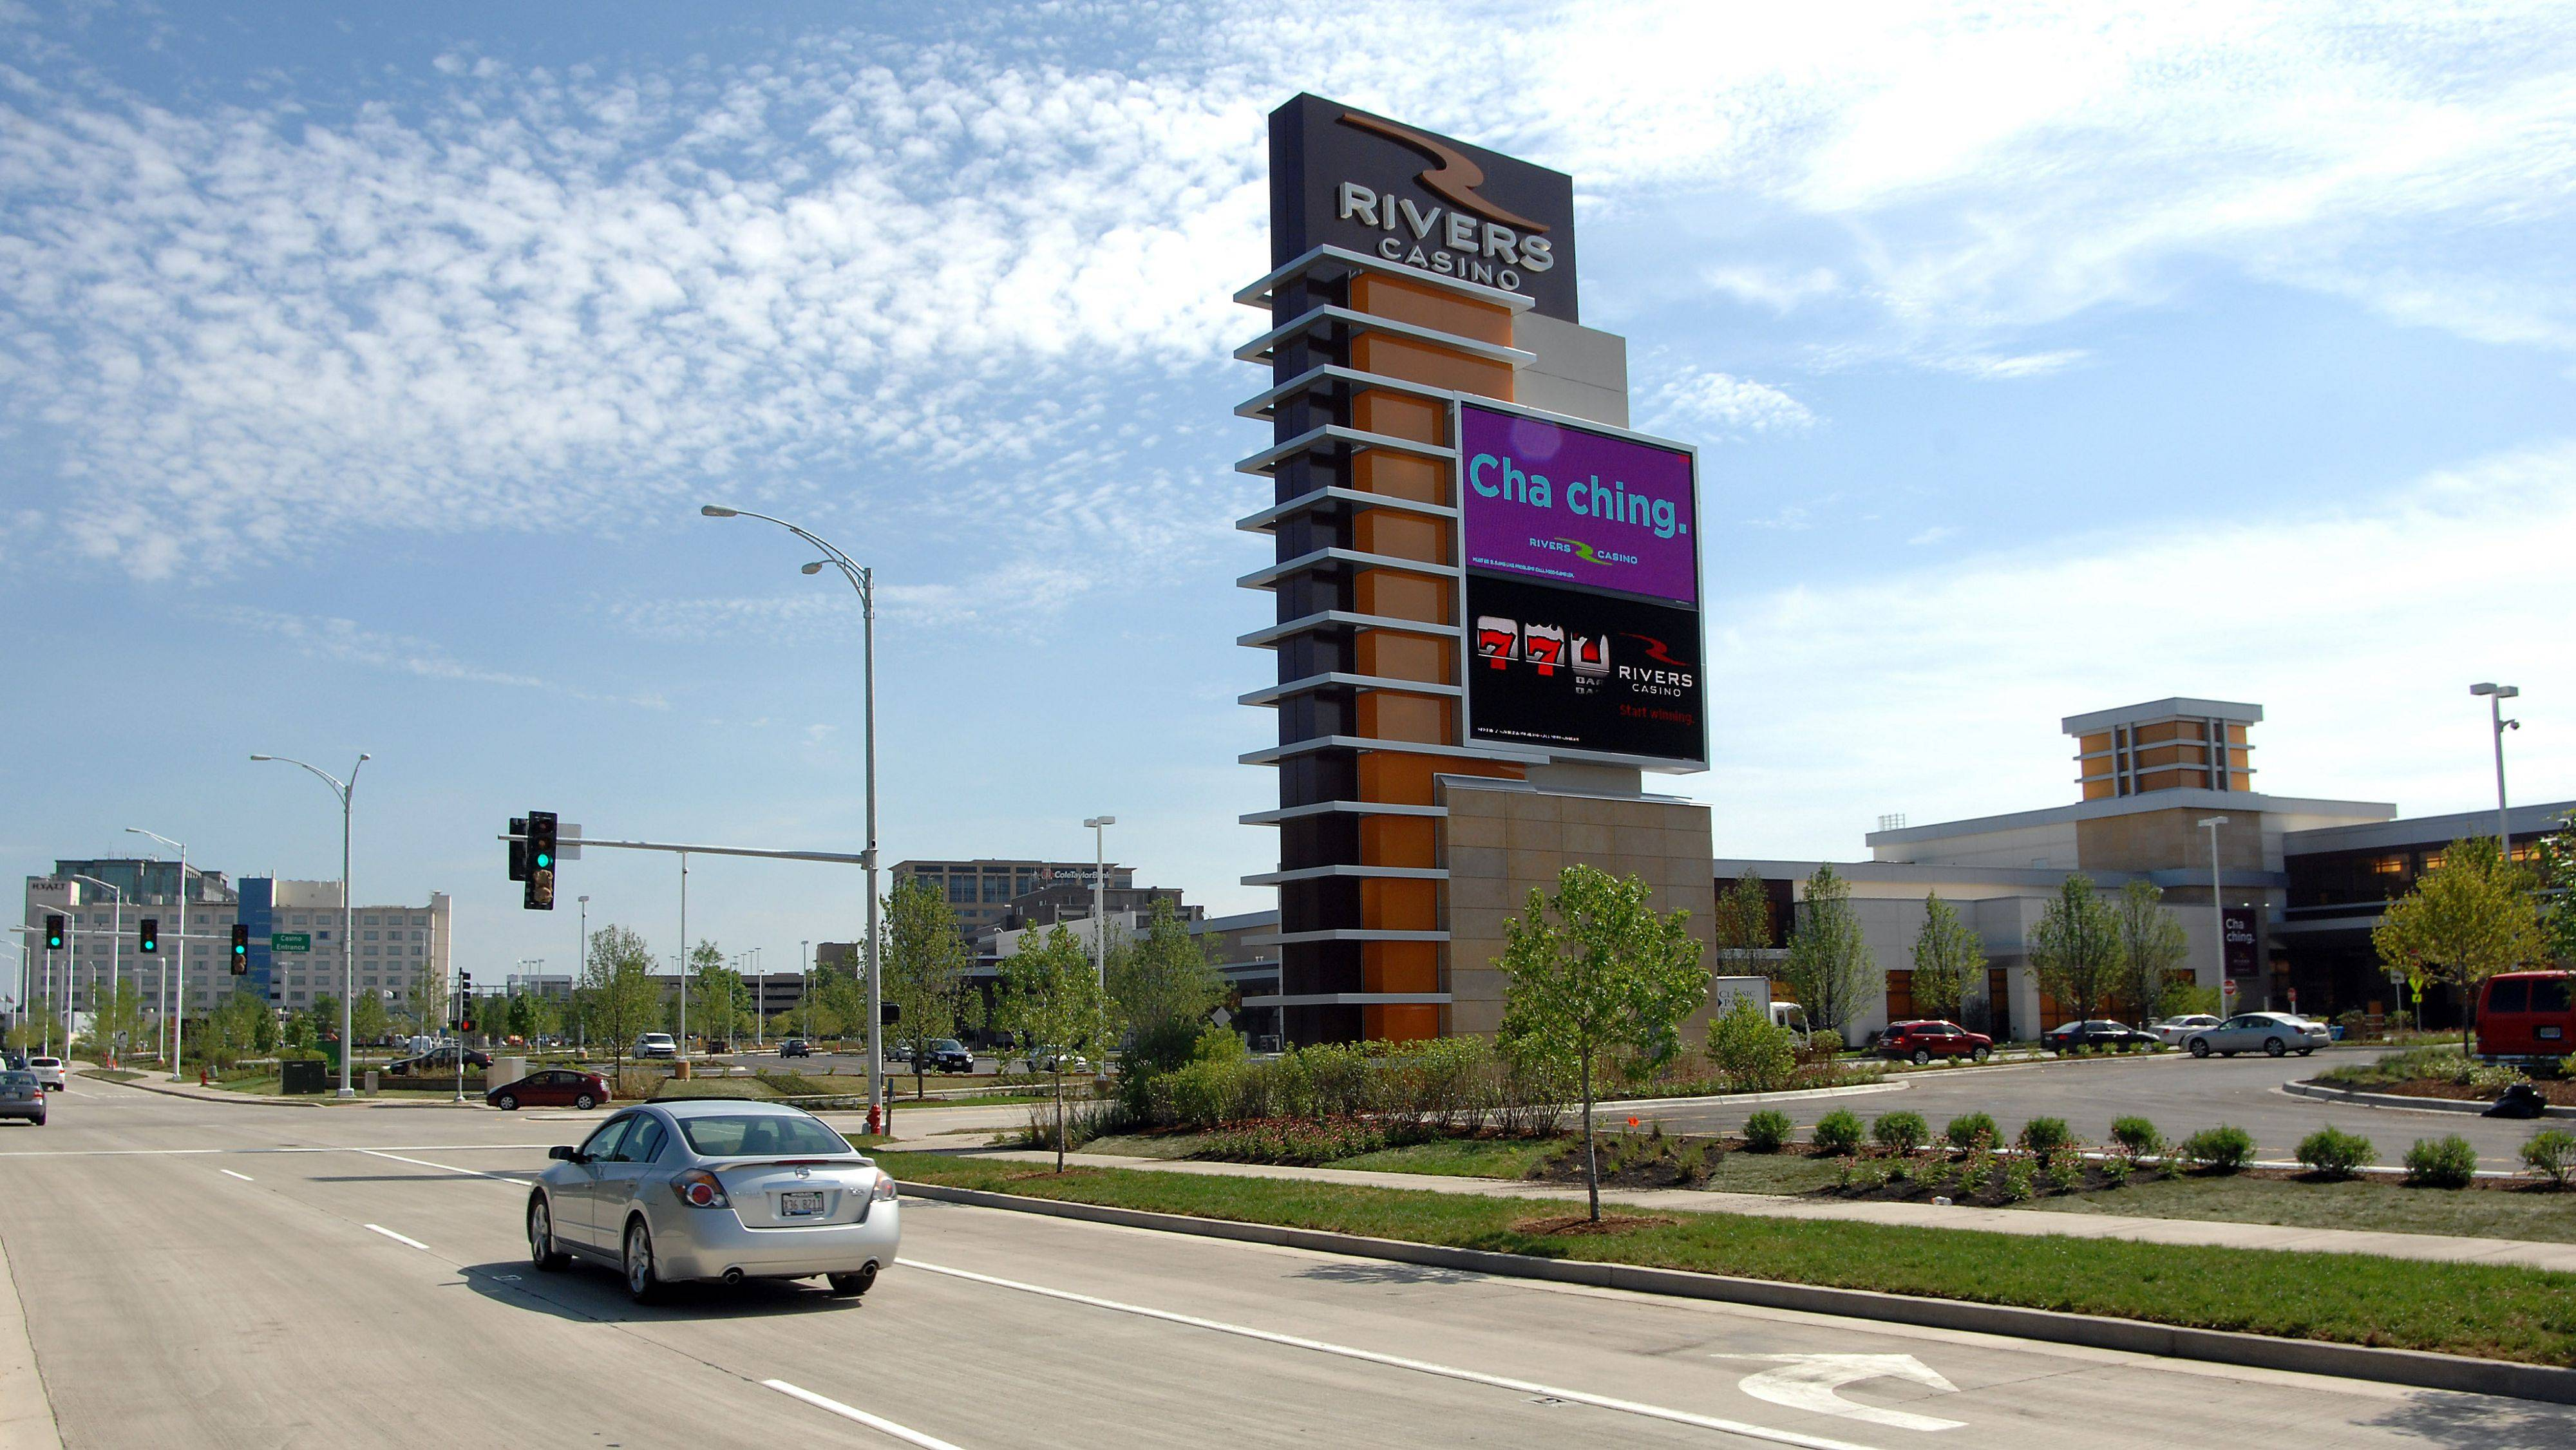 Des Plaines betting on casino to spur development